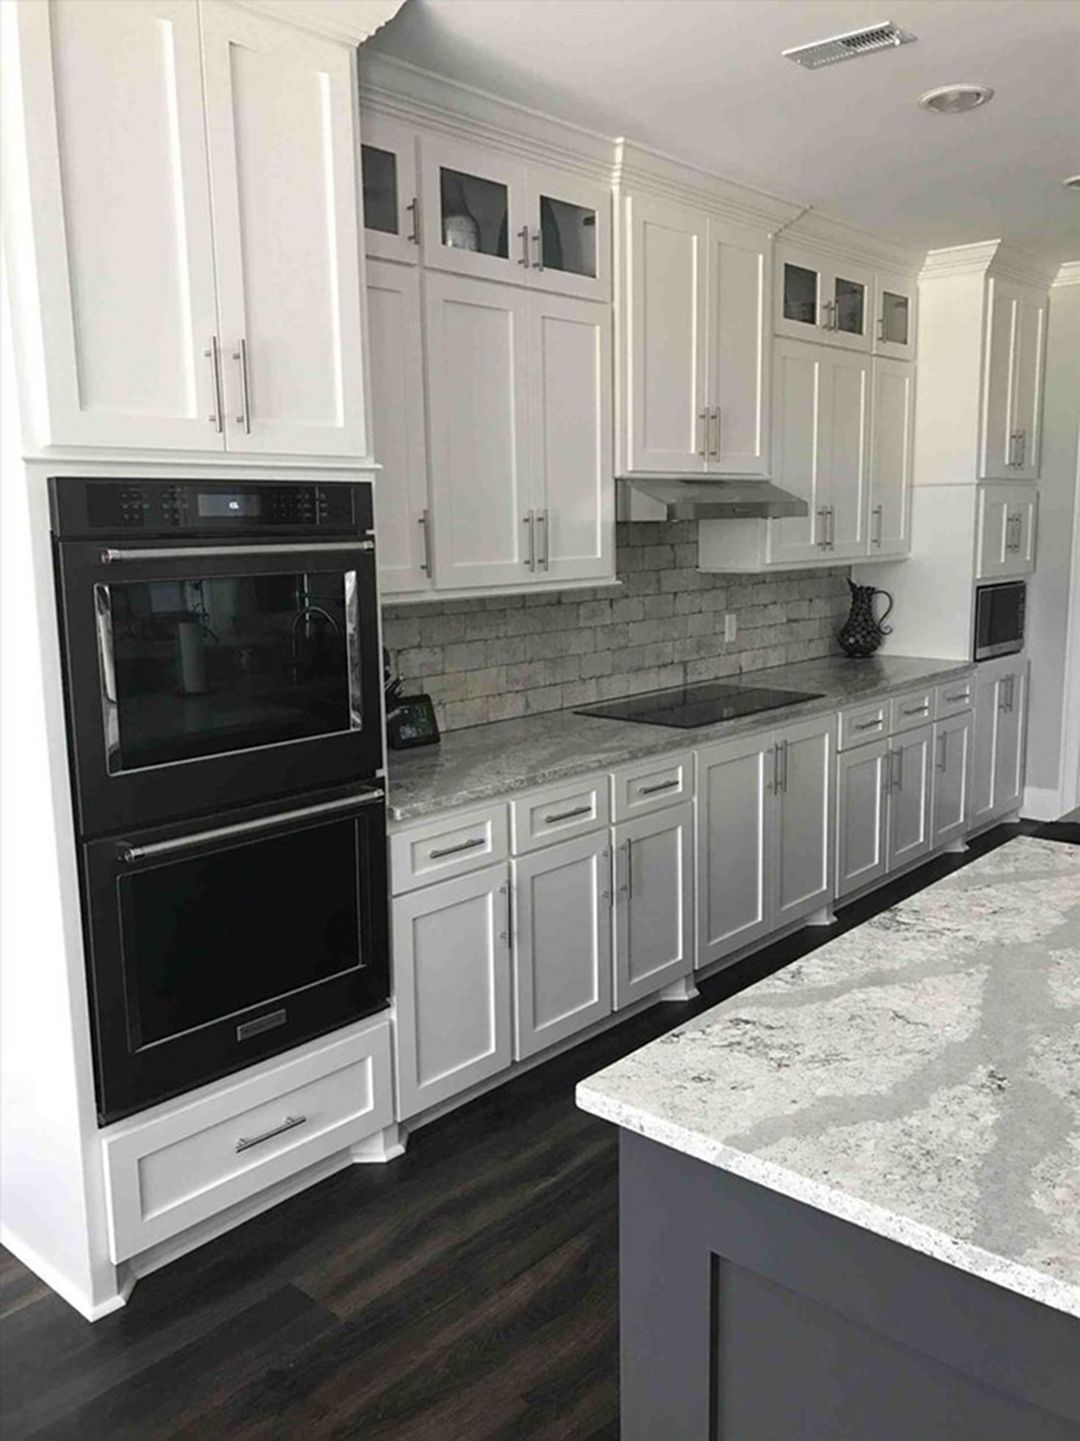 Best 30 Elegant Black And White Kitchen Cabinet And Appliance 400 x 300